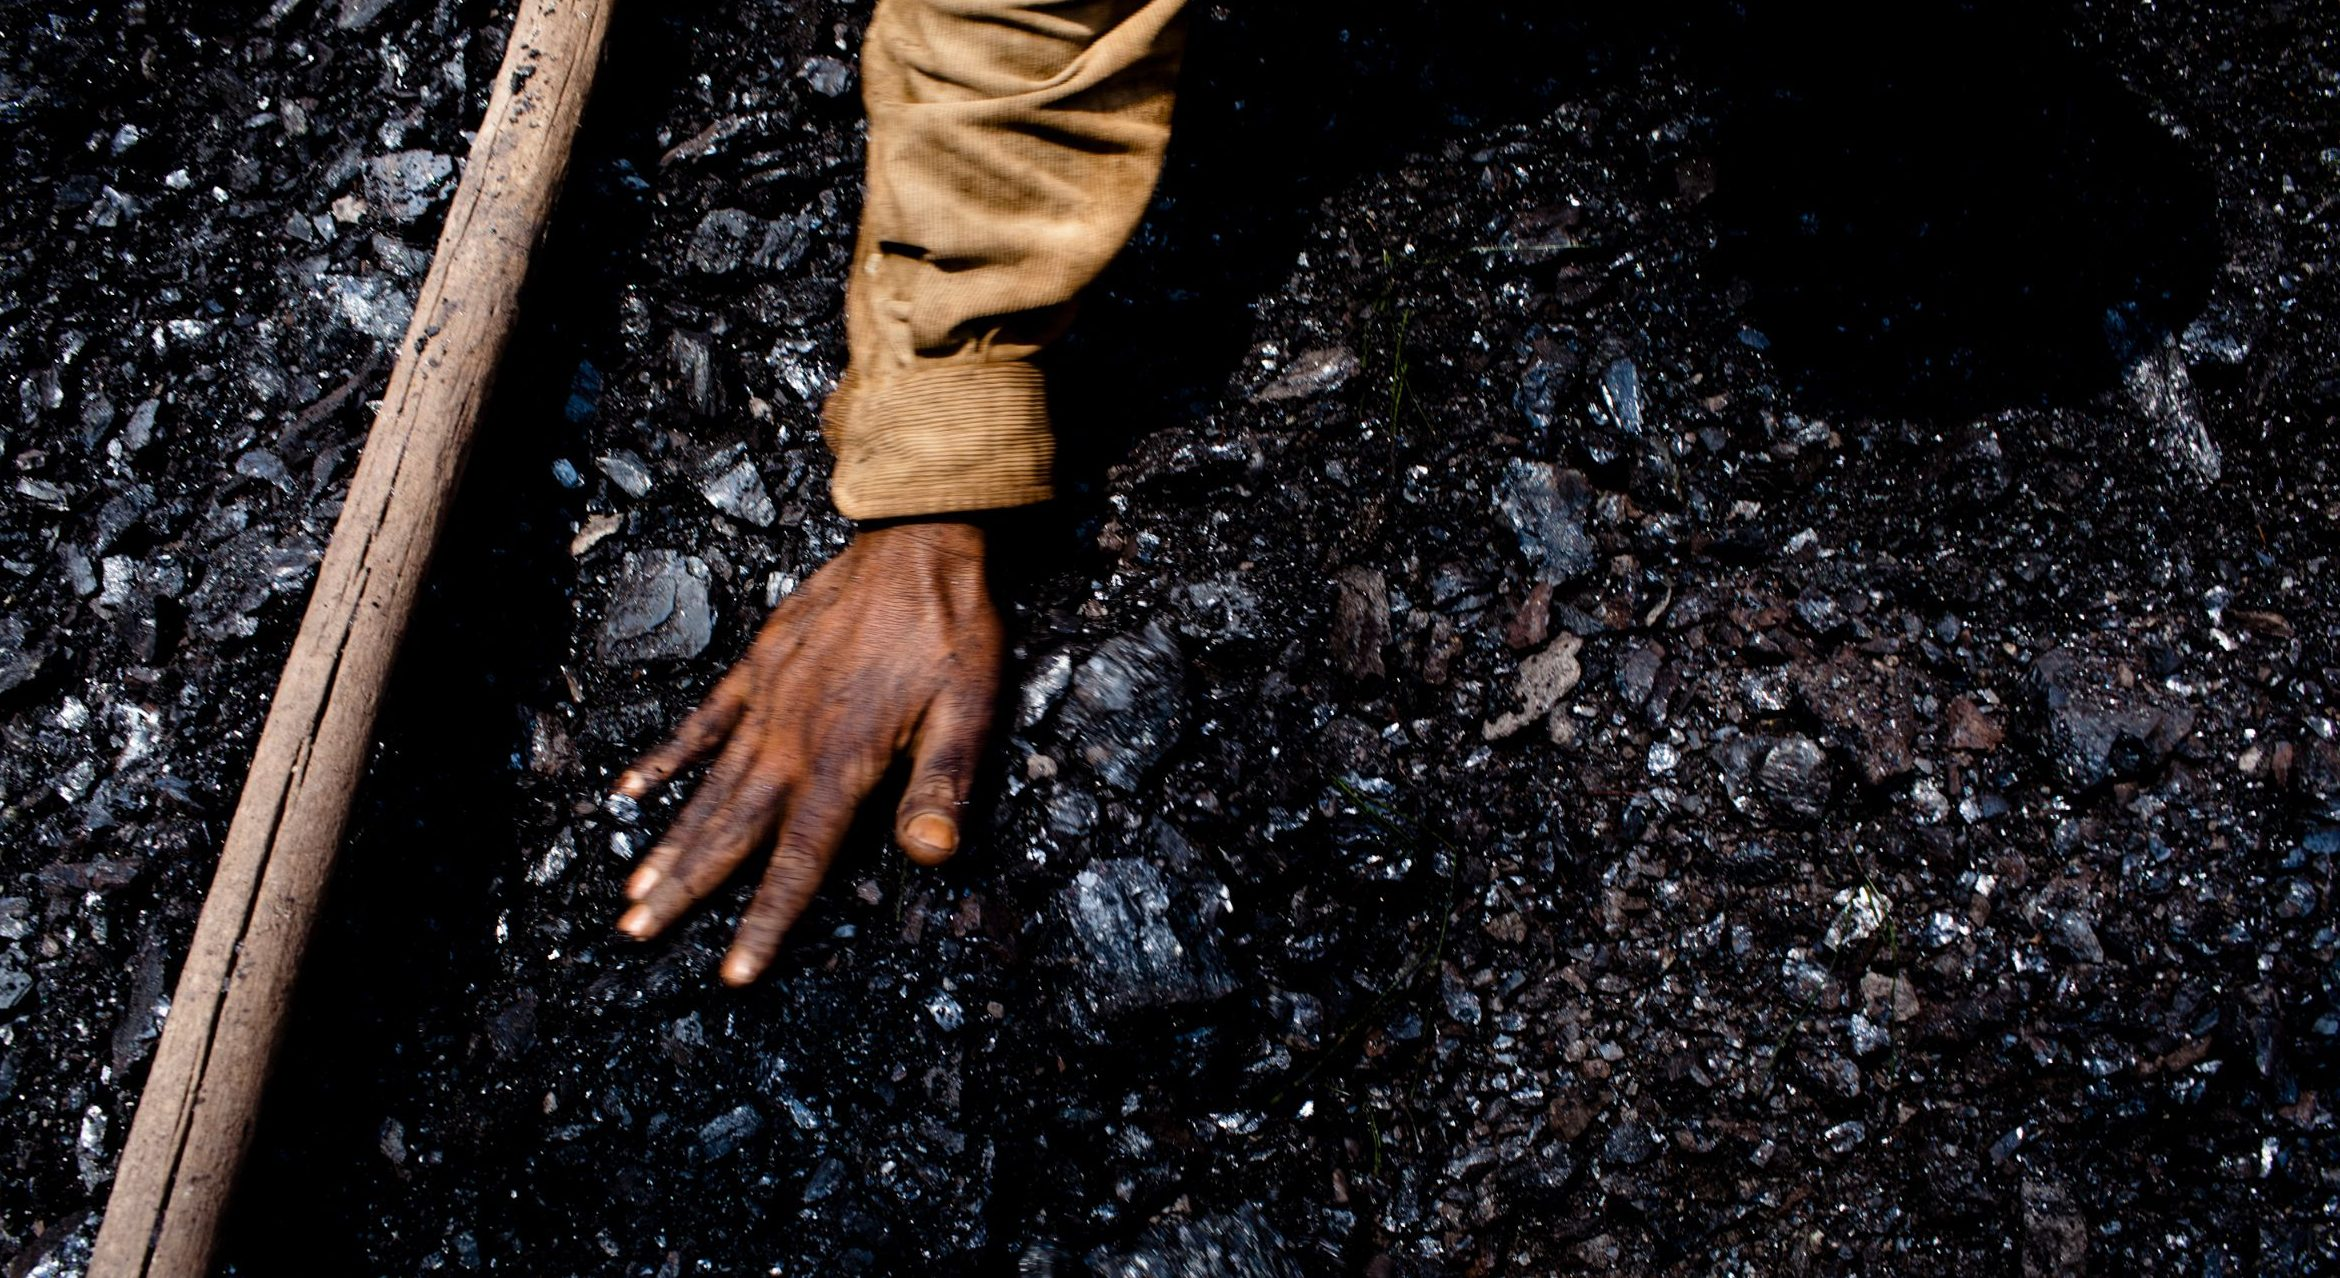 A hand touching a pile of coal